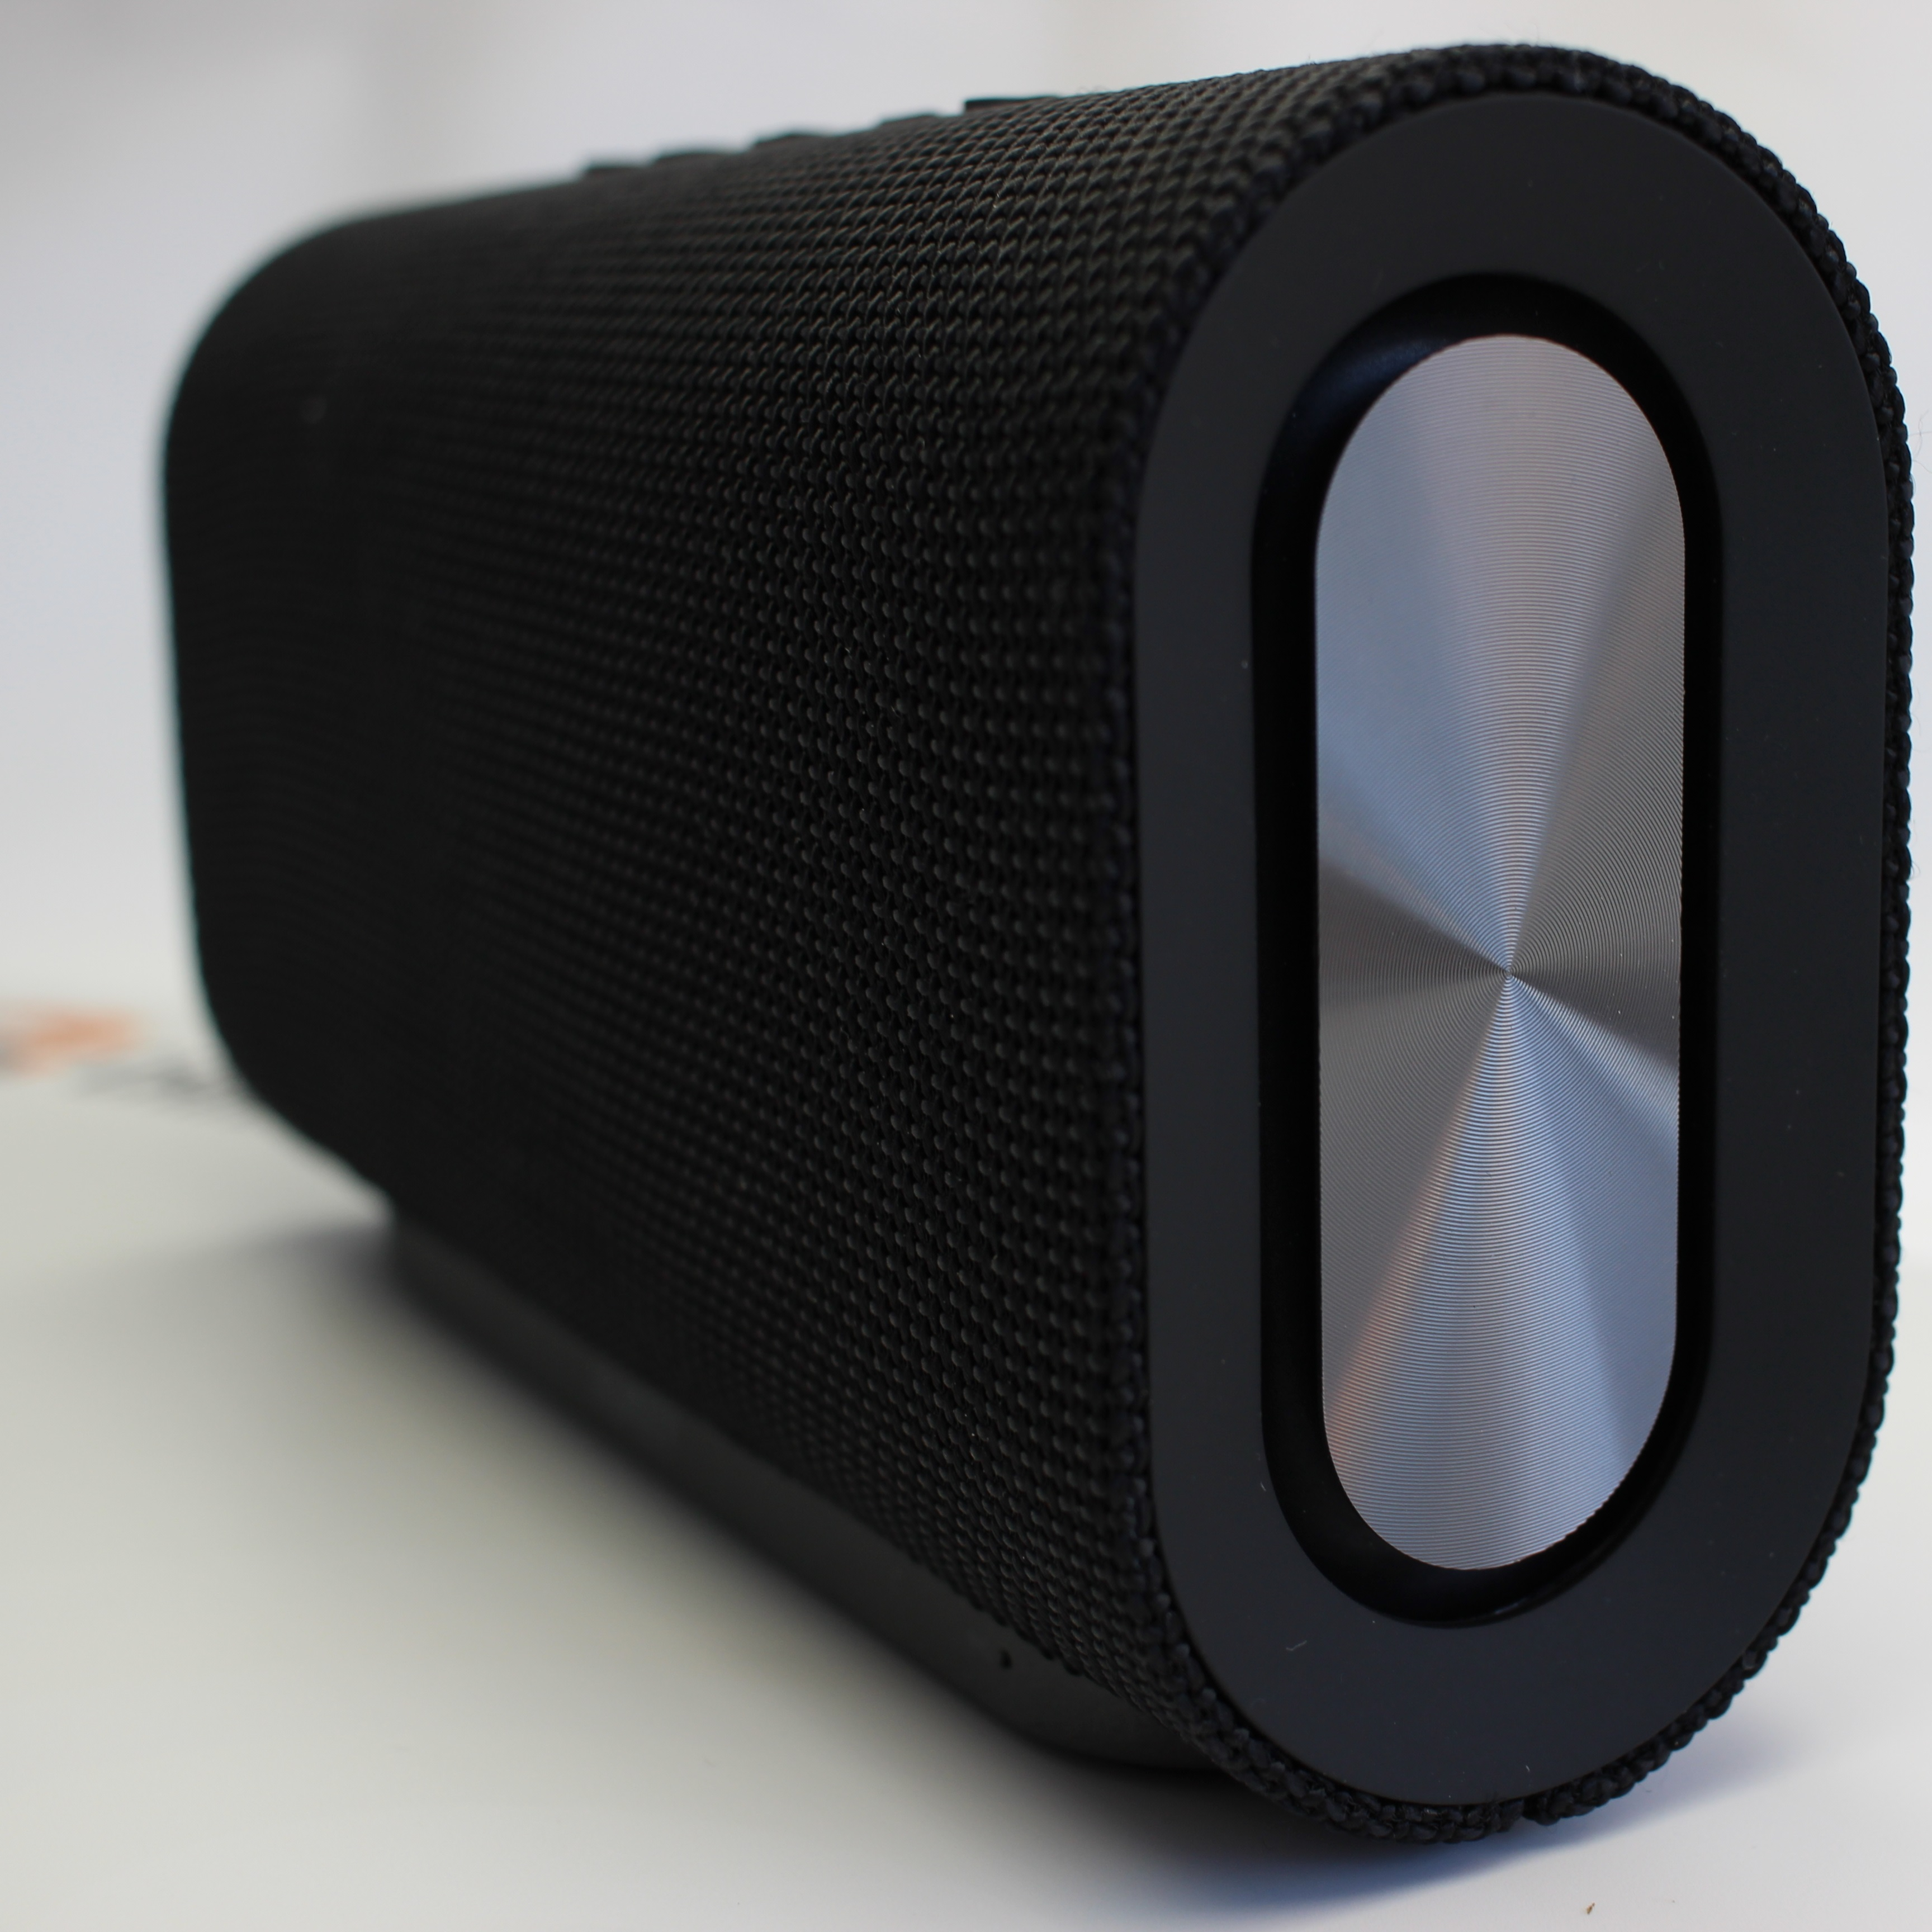 test aukey eclipse bluetooth speaker zwei passivstrahler. Black Bedroom Furniture Sets. Home Design Ideas